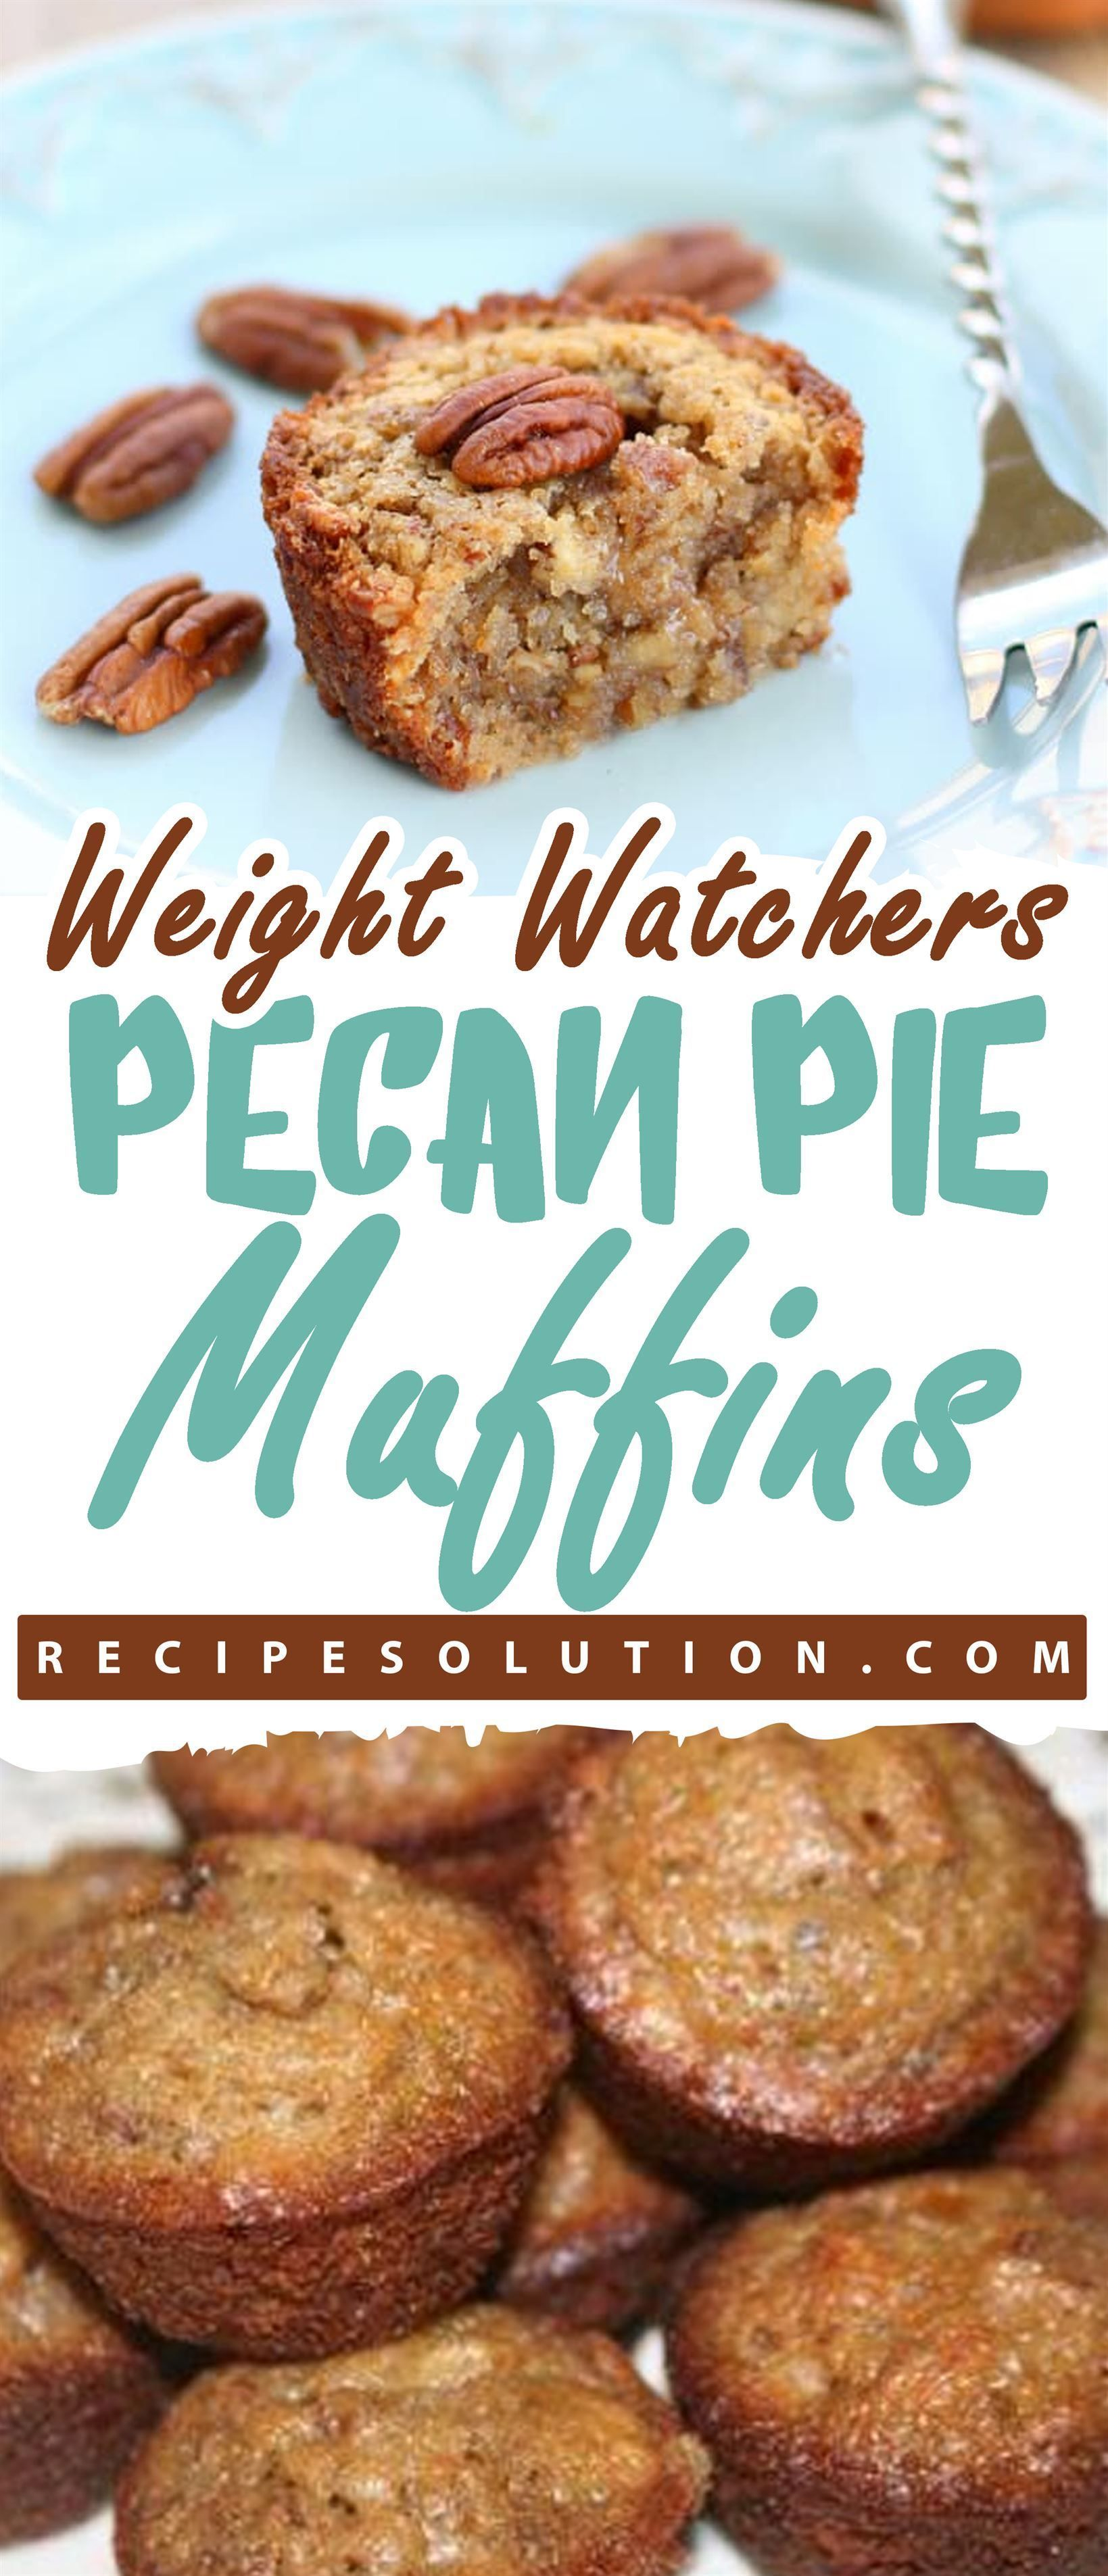 If you are in a hurry and you need to make something sweet, you should try this pecan pie muffins. Very delicious and easy to make. Check it out. prep time: 5 mins cook time: 12 mins total time: 17 #pecanpierecipe